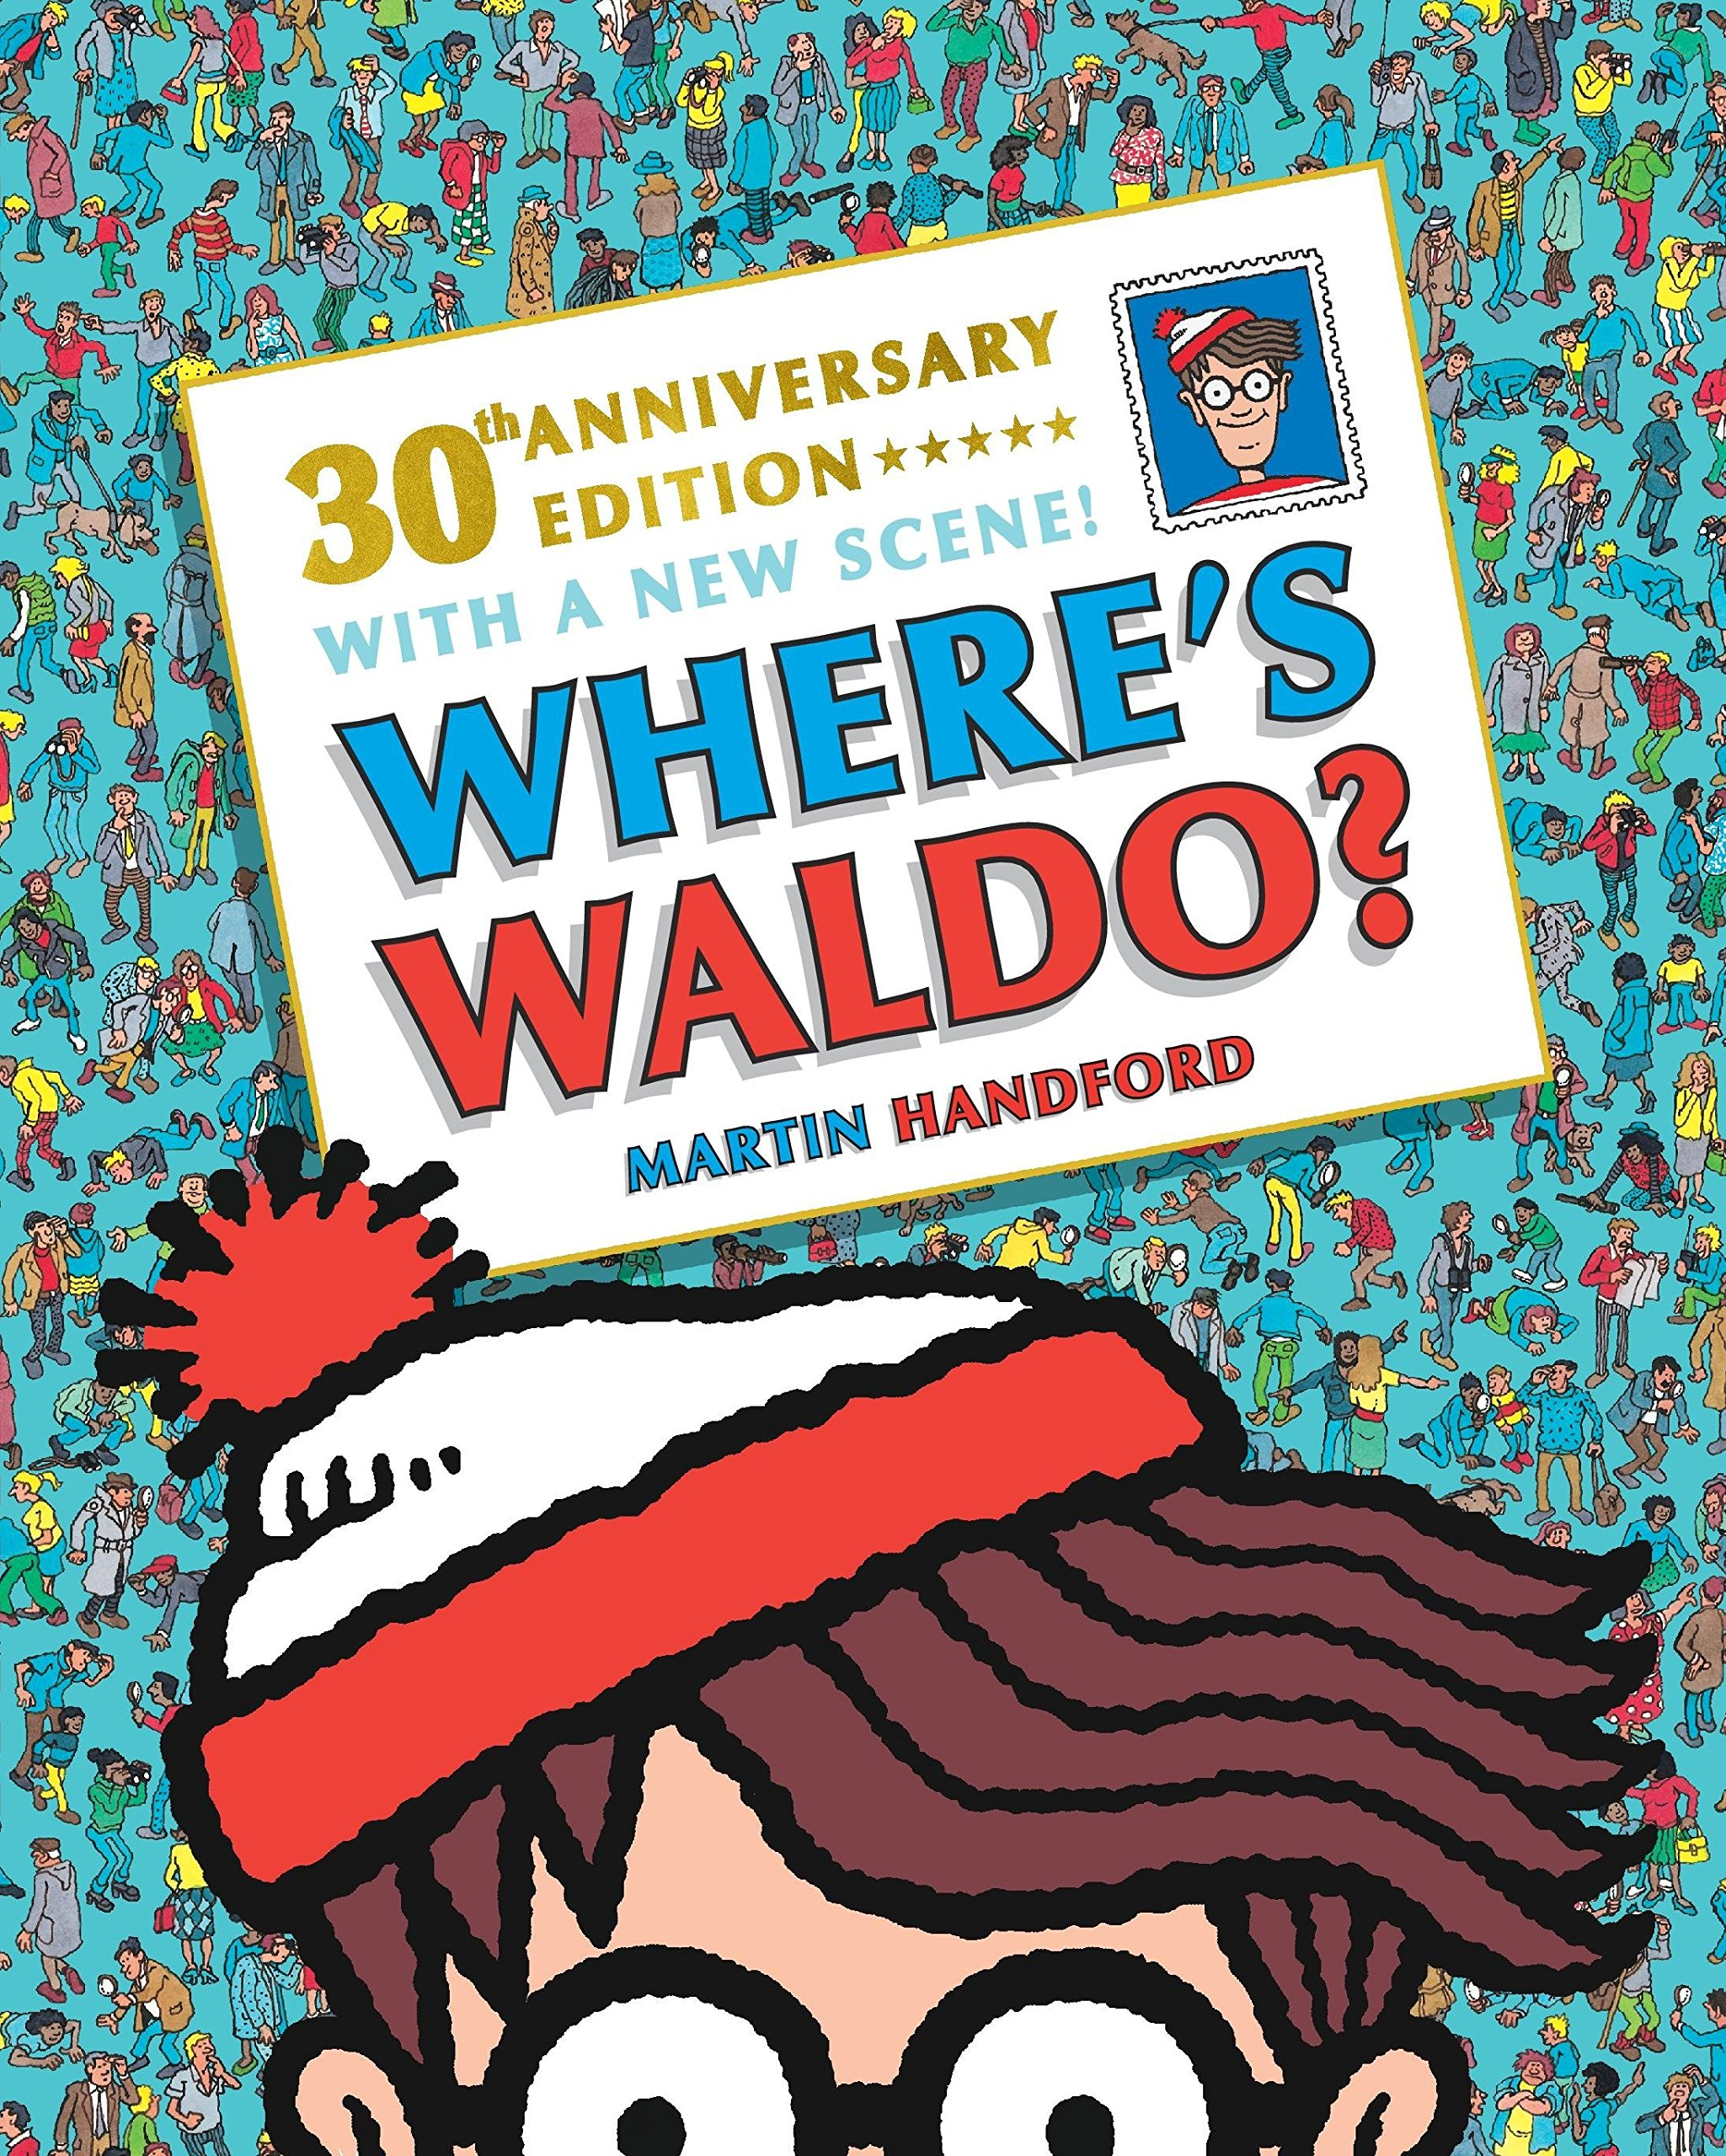 Where S Waldo 30th Anniversary Edition Handford Martin Handford Martin 9780763695798 Amazon Com Books